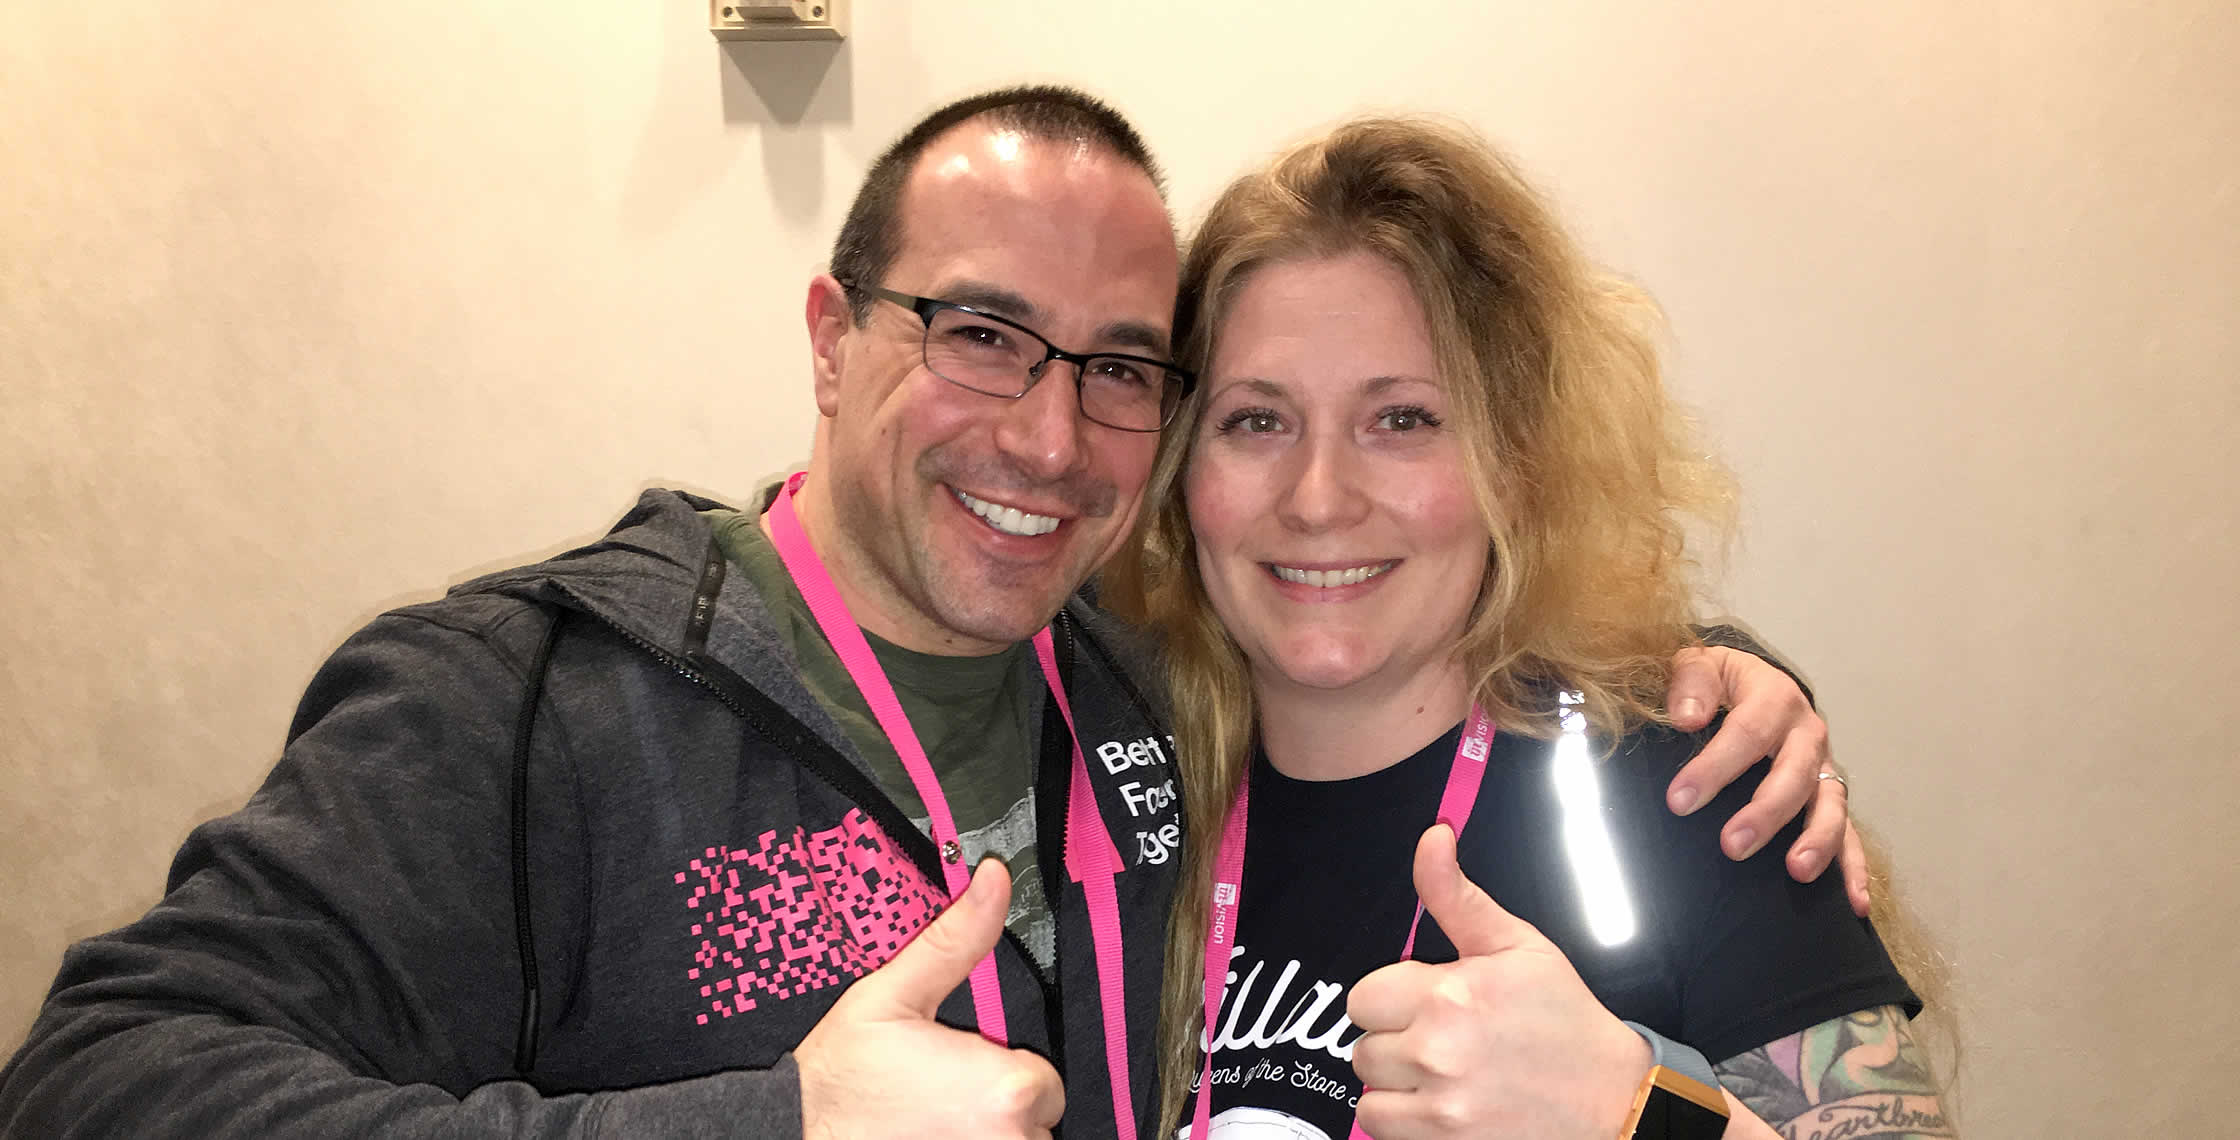 Ben Nadel at InVision In Real Life (IRL) 2018 (Hollywood, CA) with: Dana Lawson